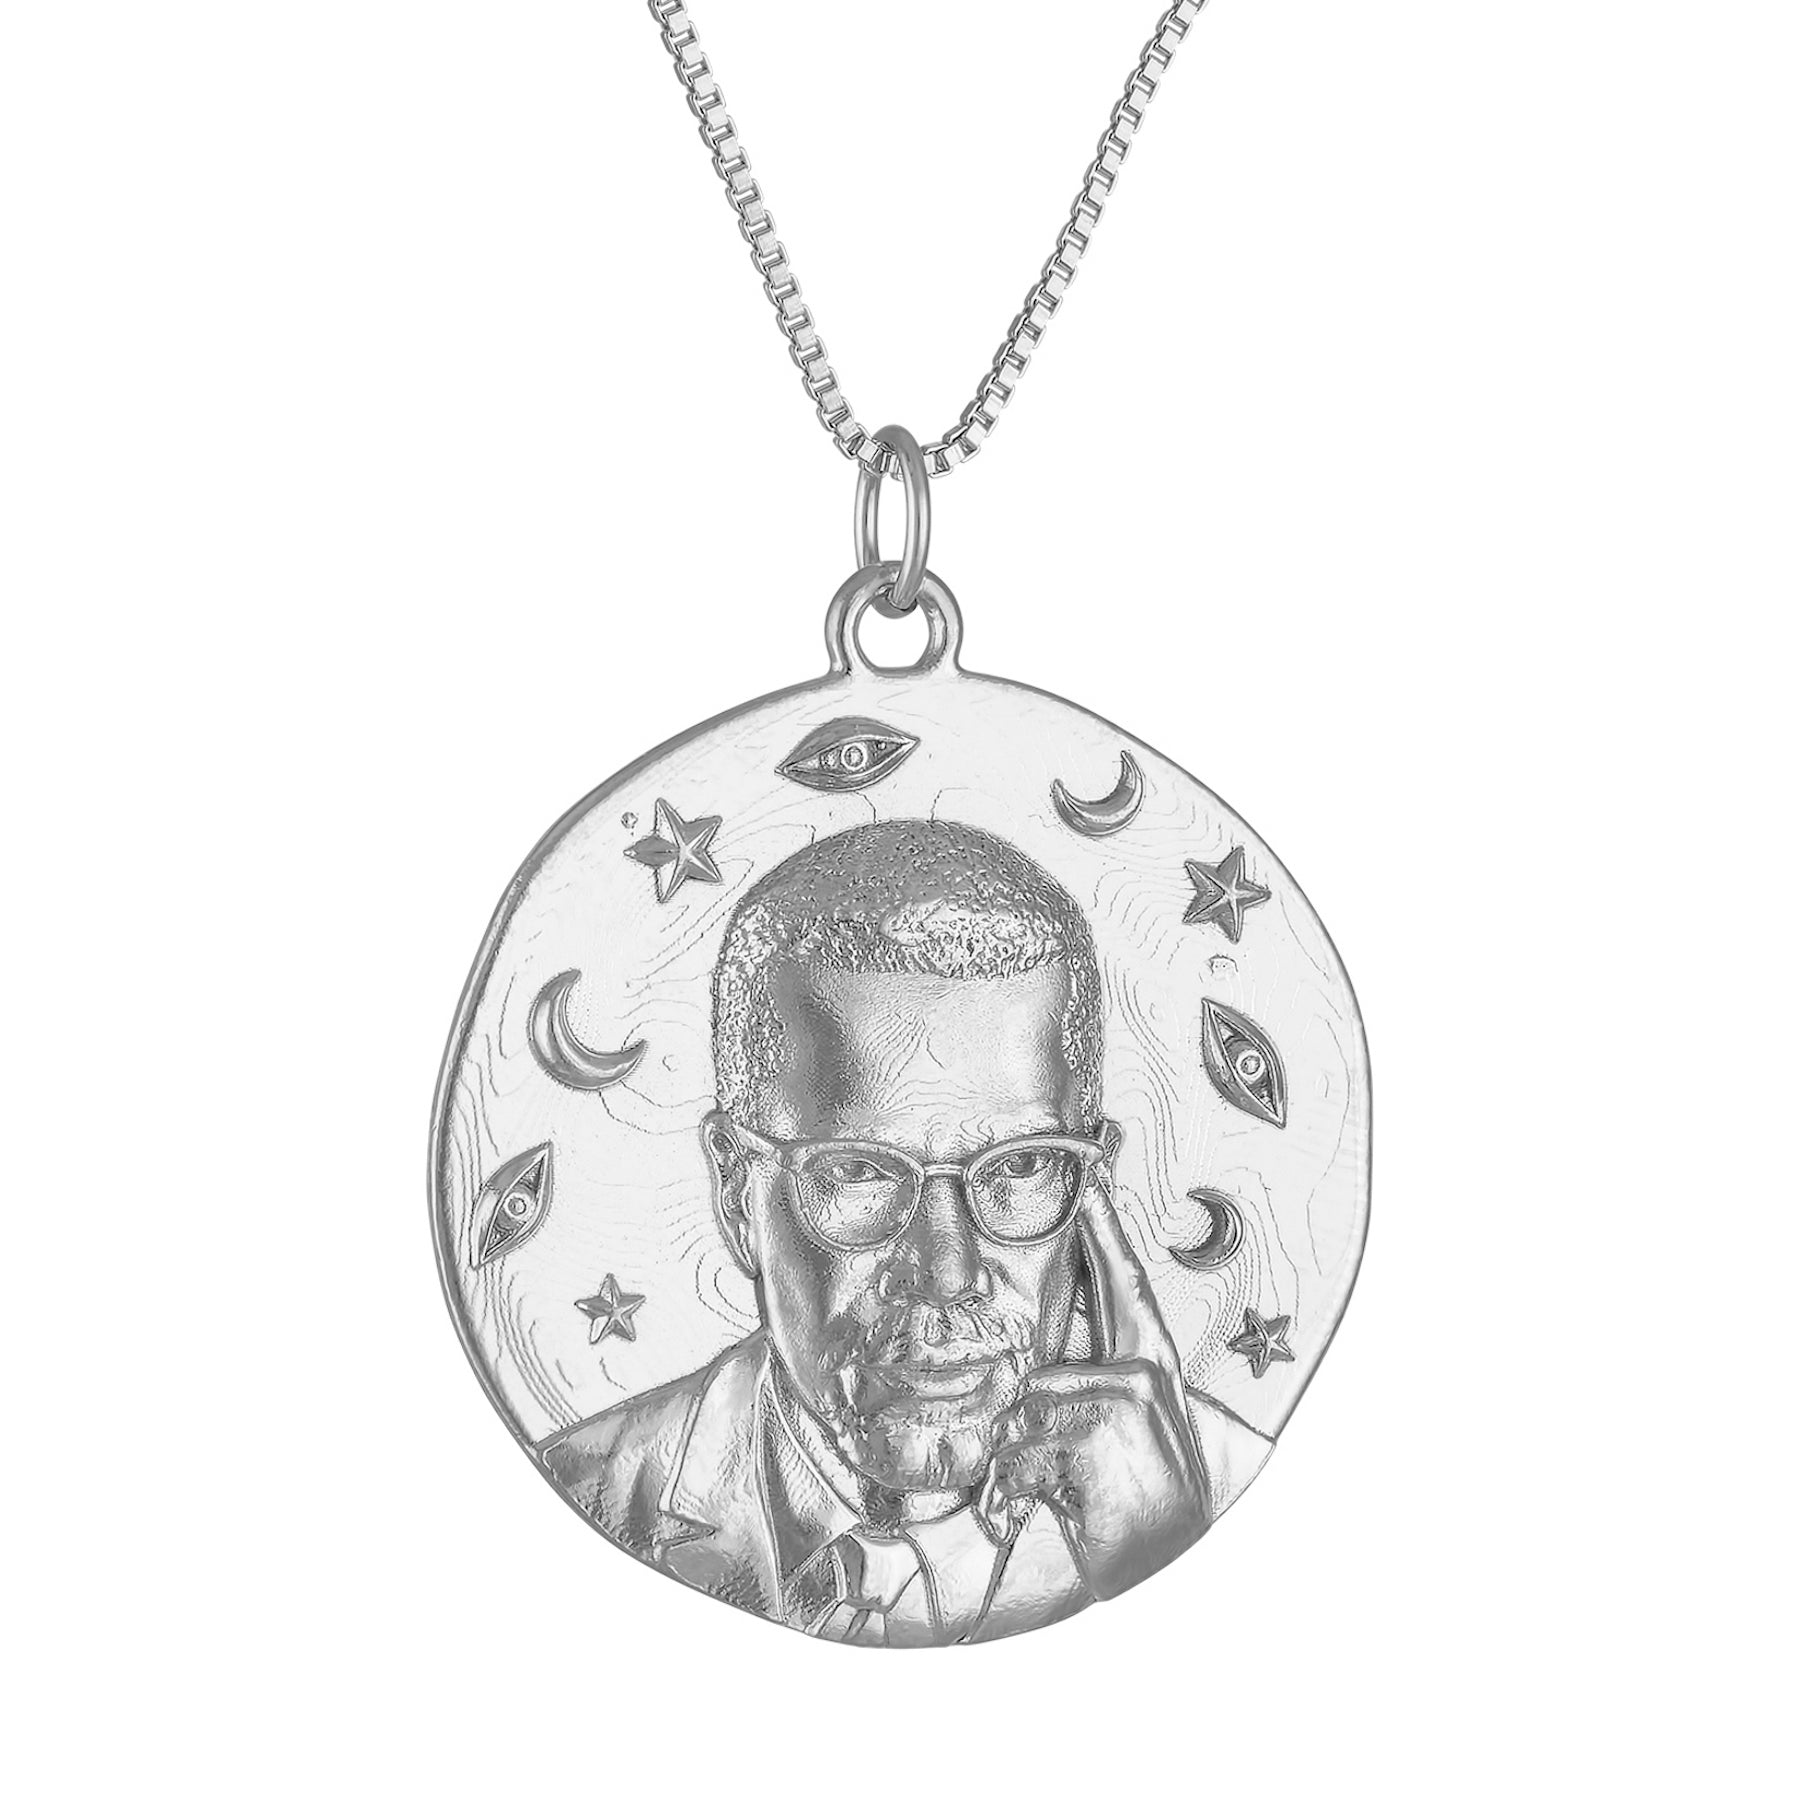 Malcolm X Large Round Medallion Necklace